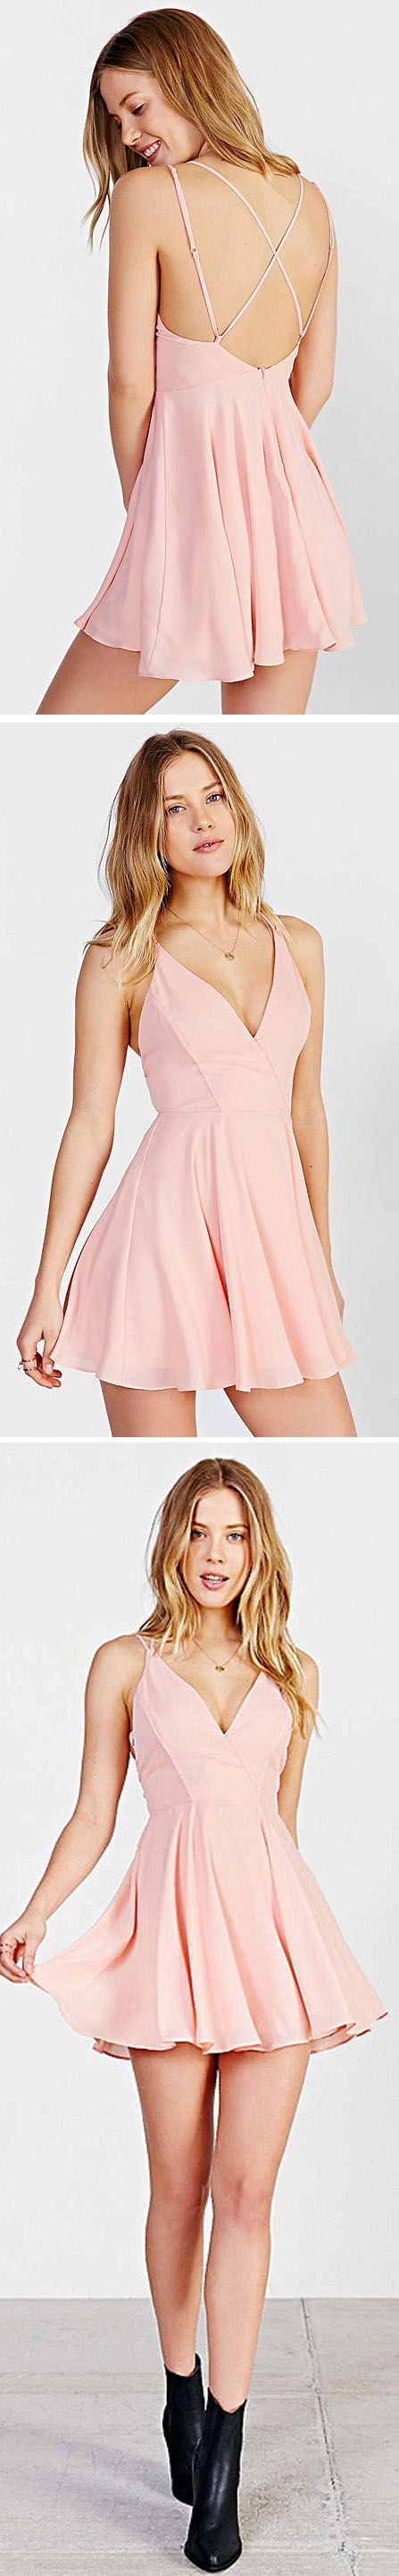 We're doing everything we can to get you flirting this summer, and this Sweet Solid V Neck Backless Dress is a good example. It gives an awesome silhouette and shows your beauty completely. Find it at OASAP!